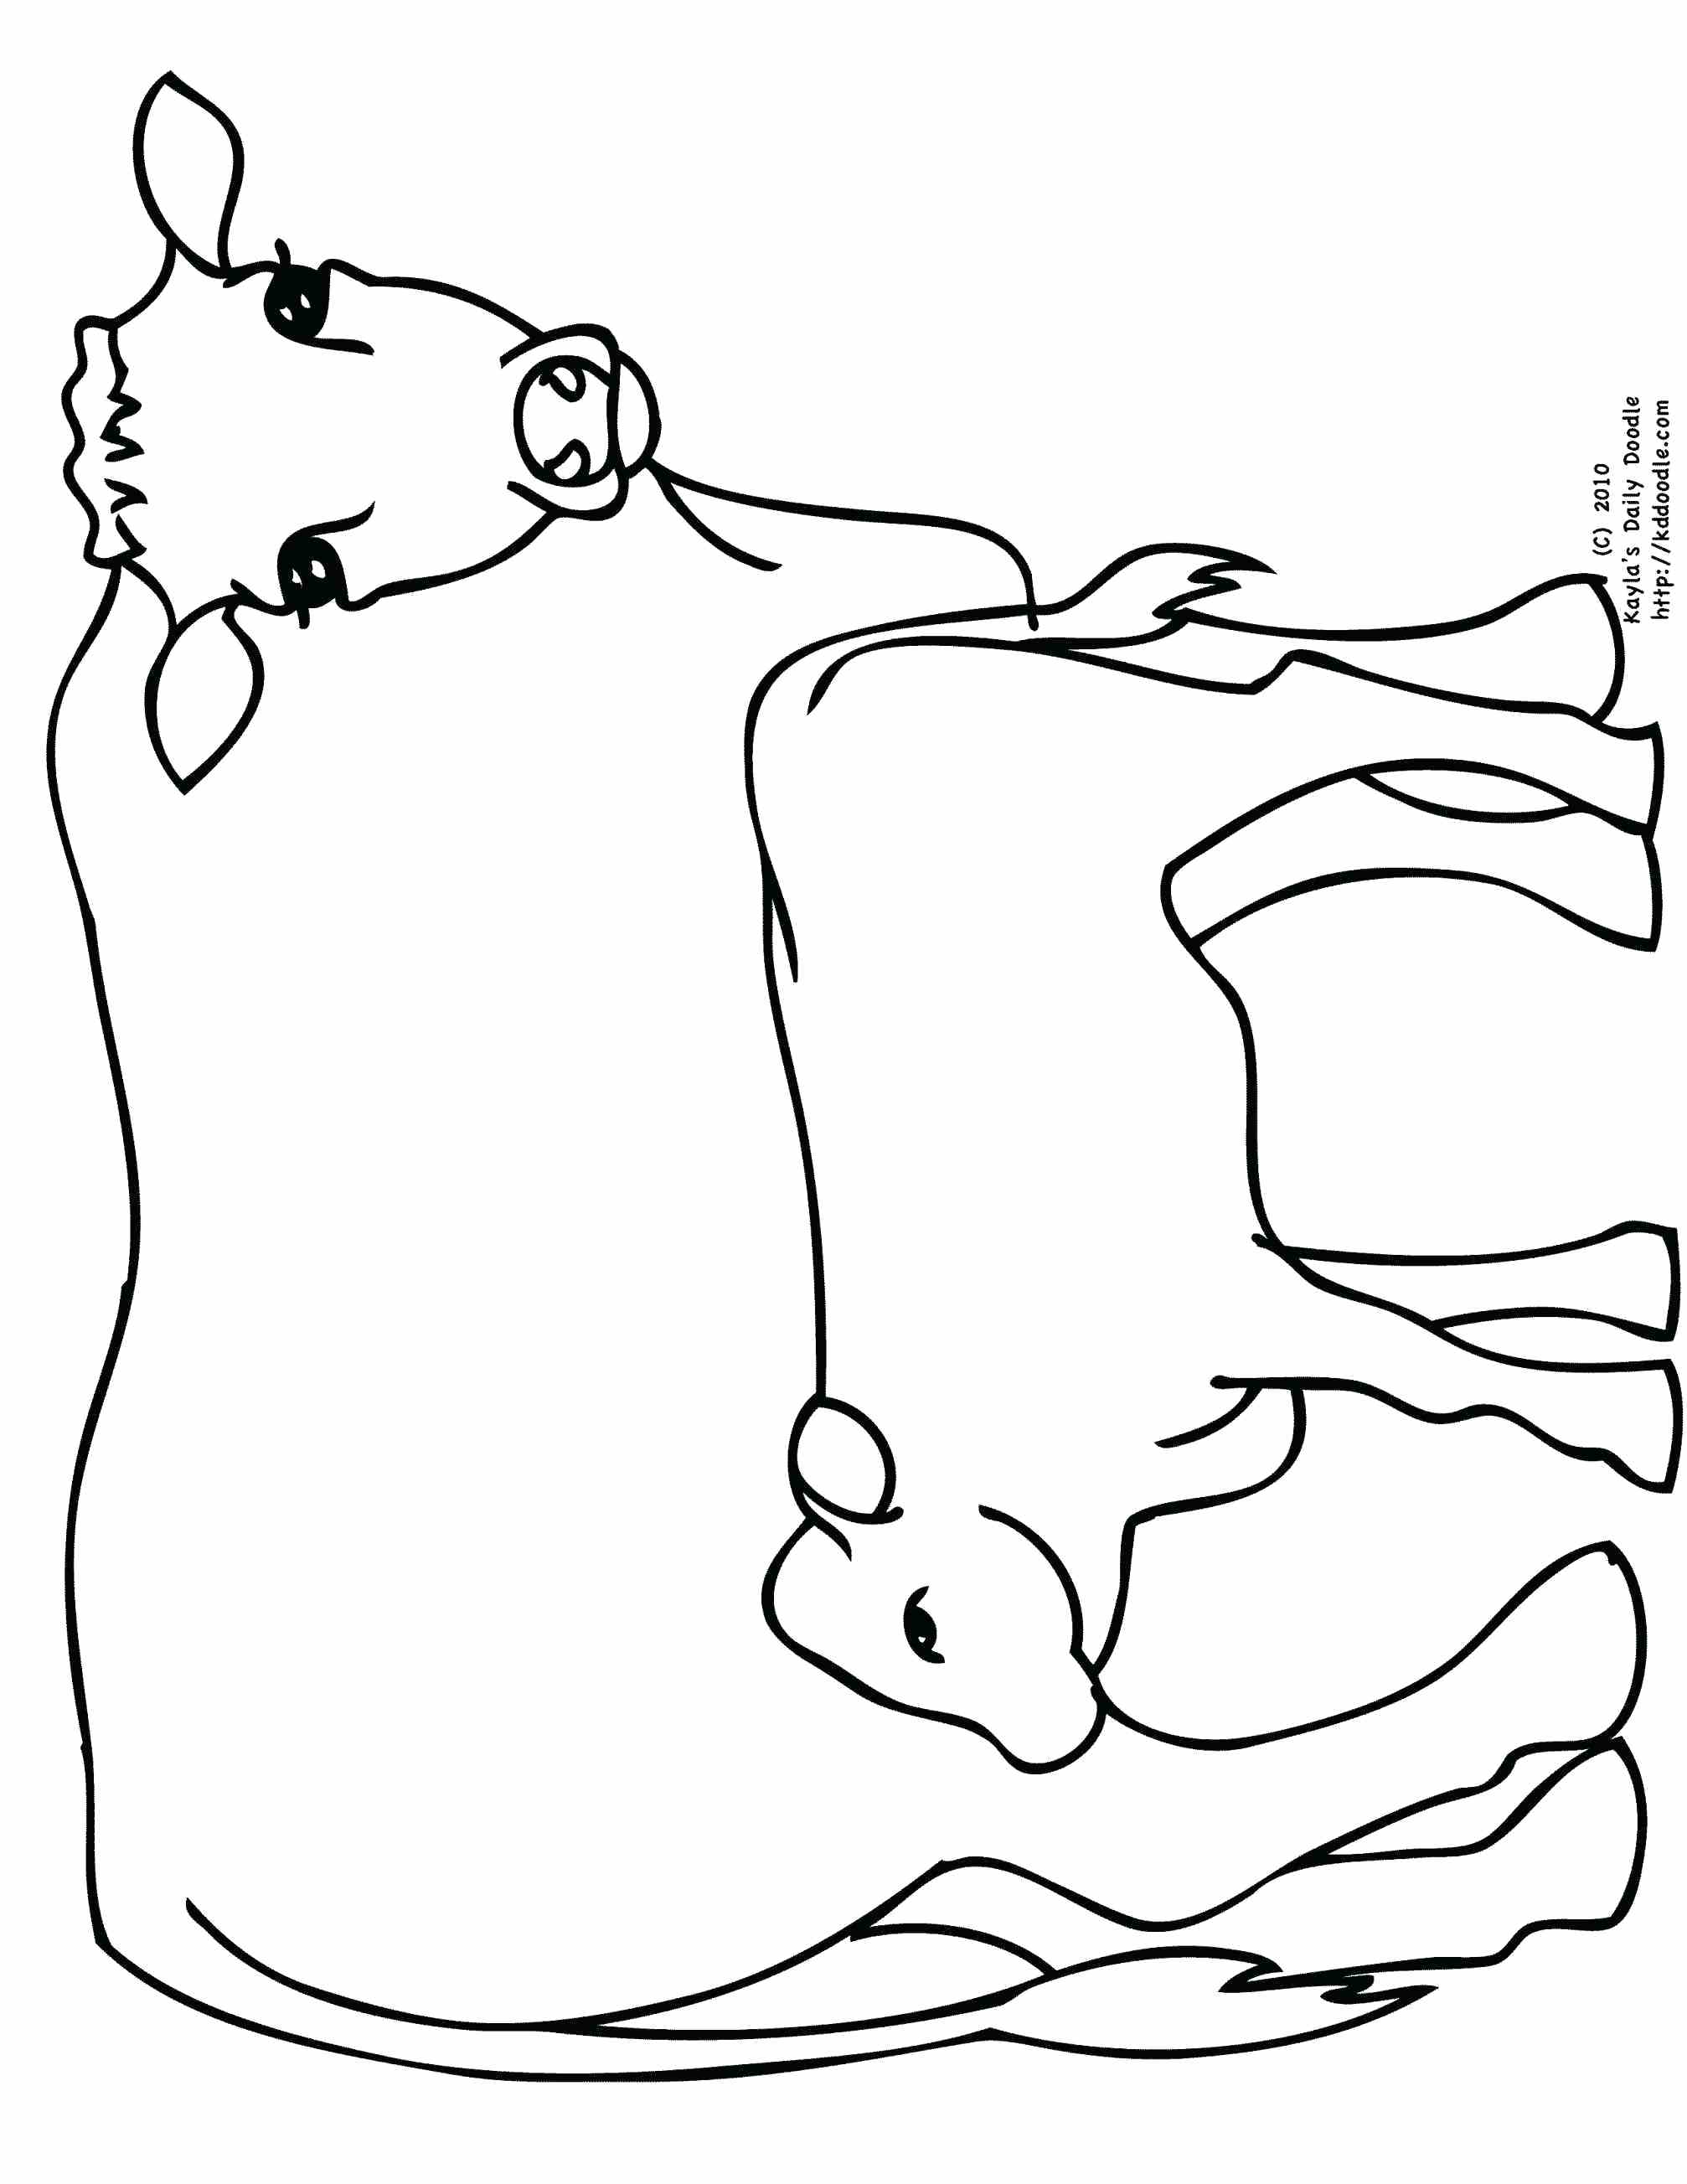 2014x2607 Coloring Texas Longhorns Coloring Pages Pig Cow Pictures To Color